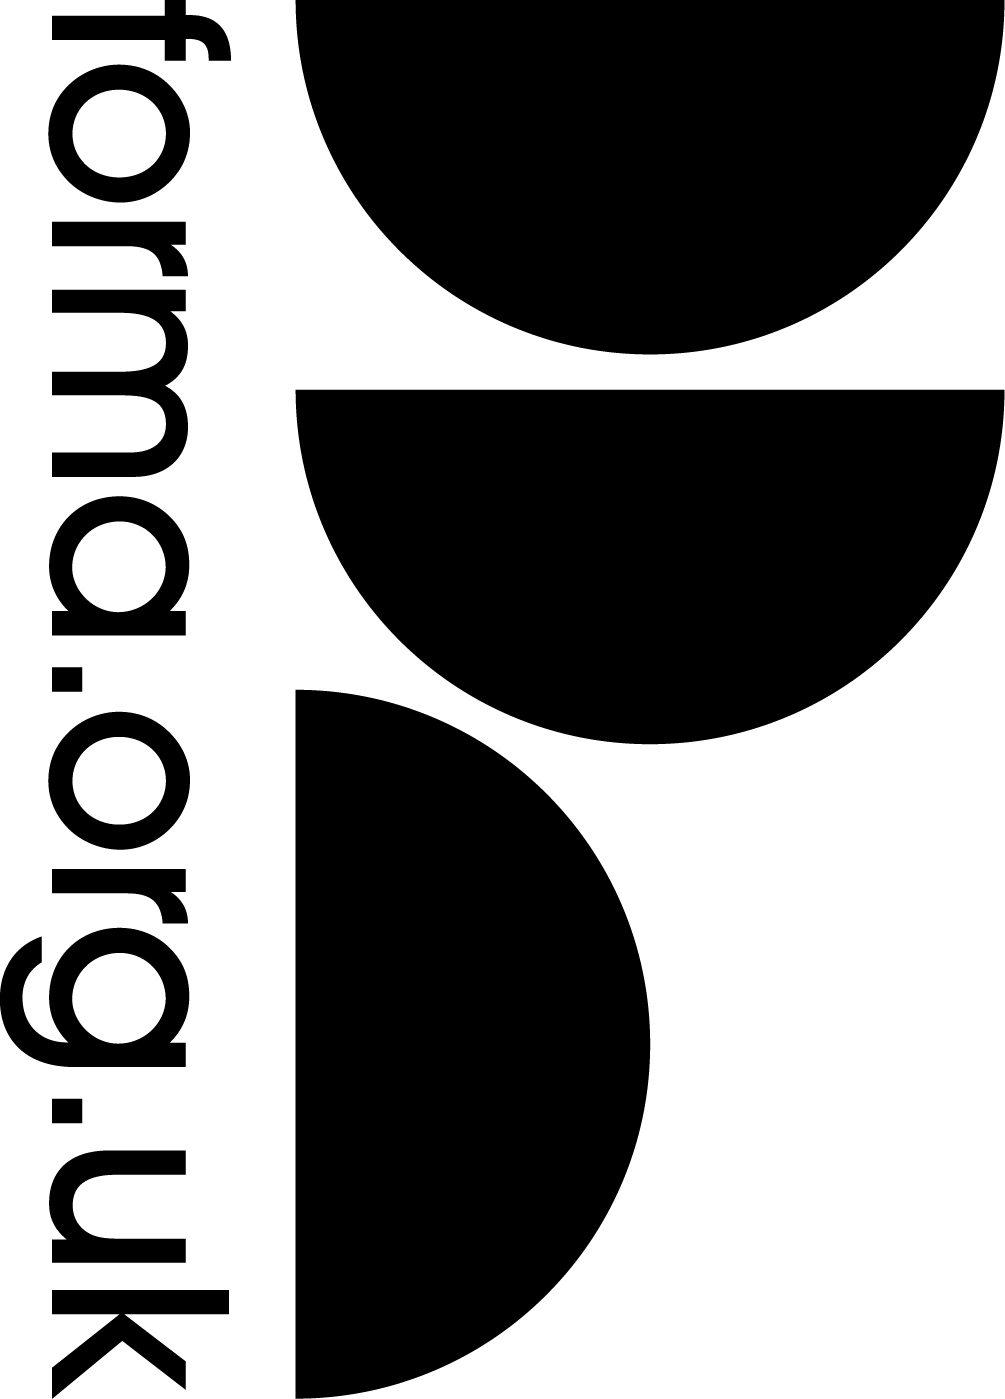 logo for Forma. Website forma.org.uk running vertically against three semi-circles.